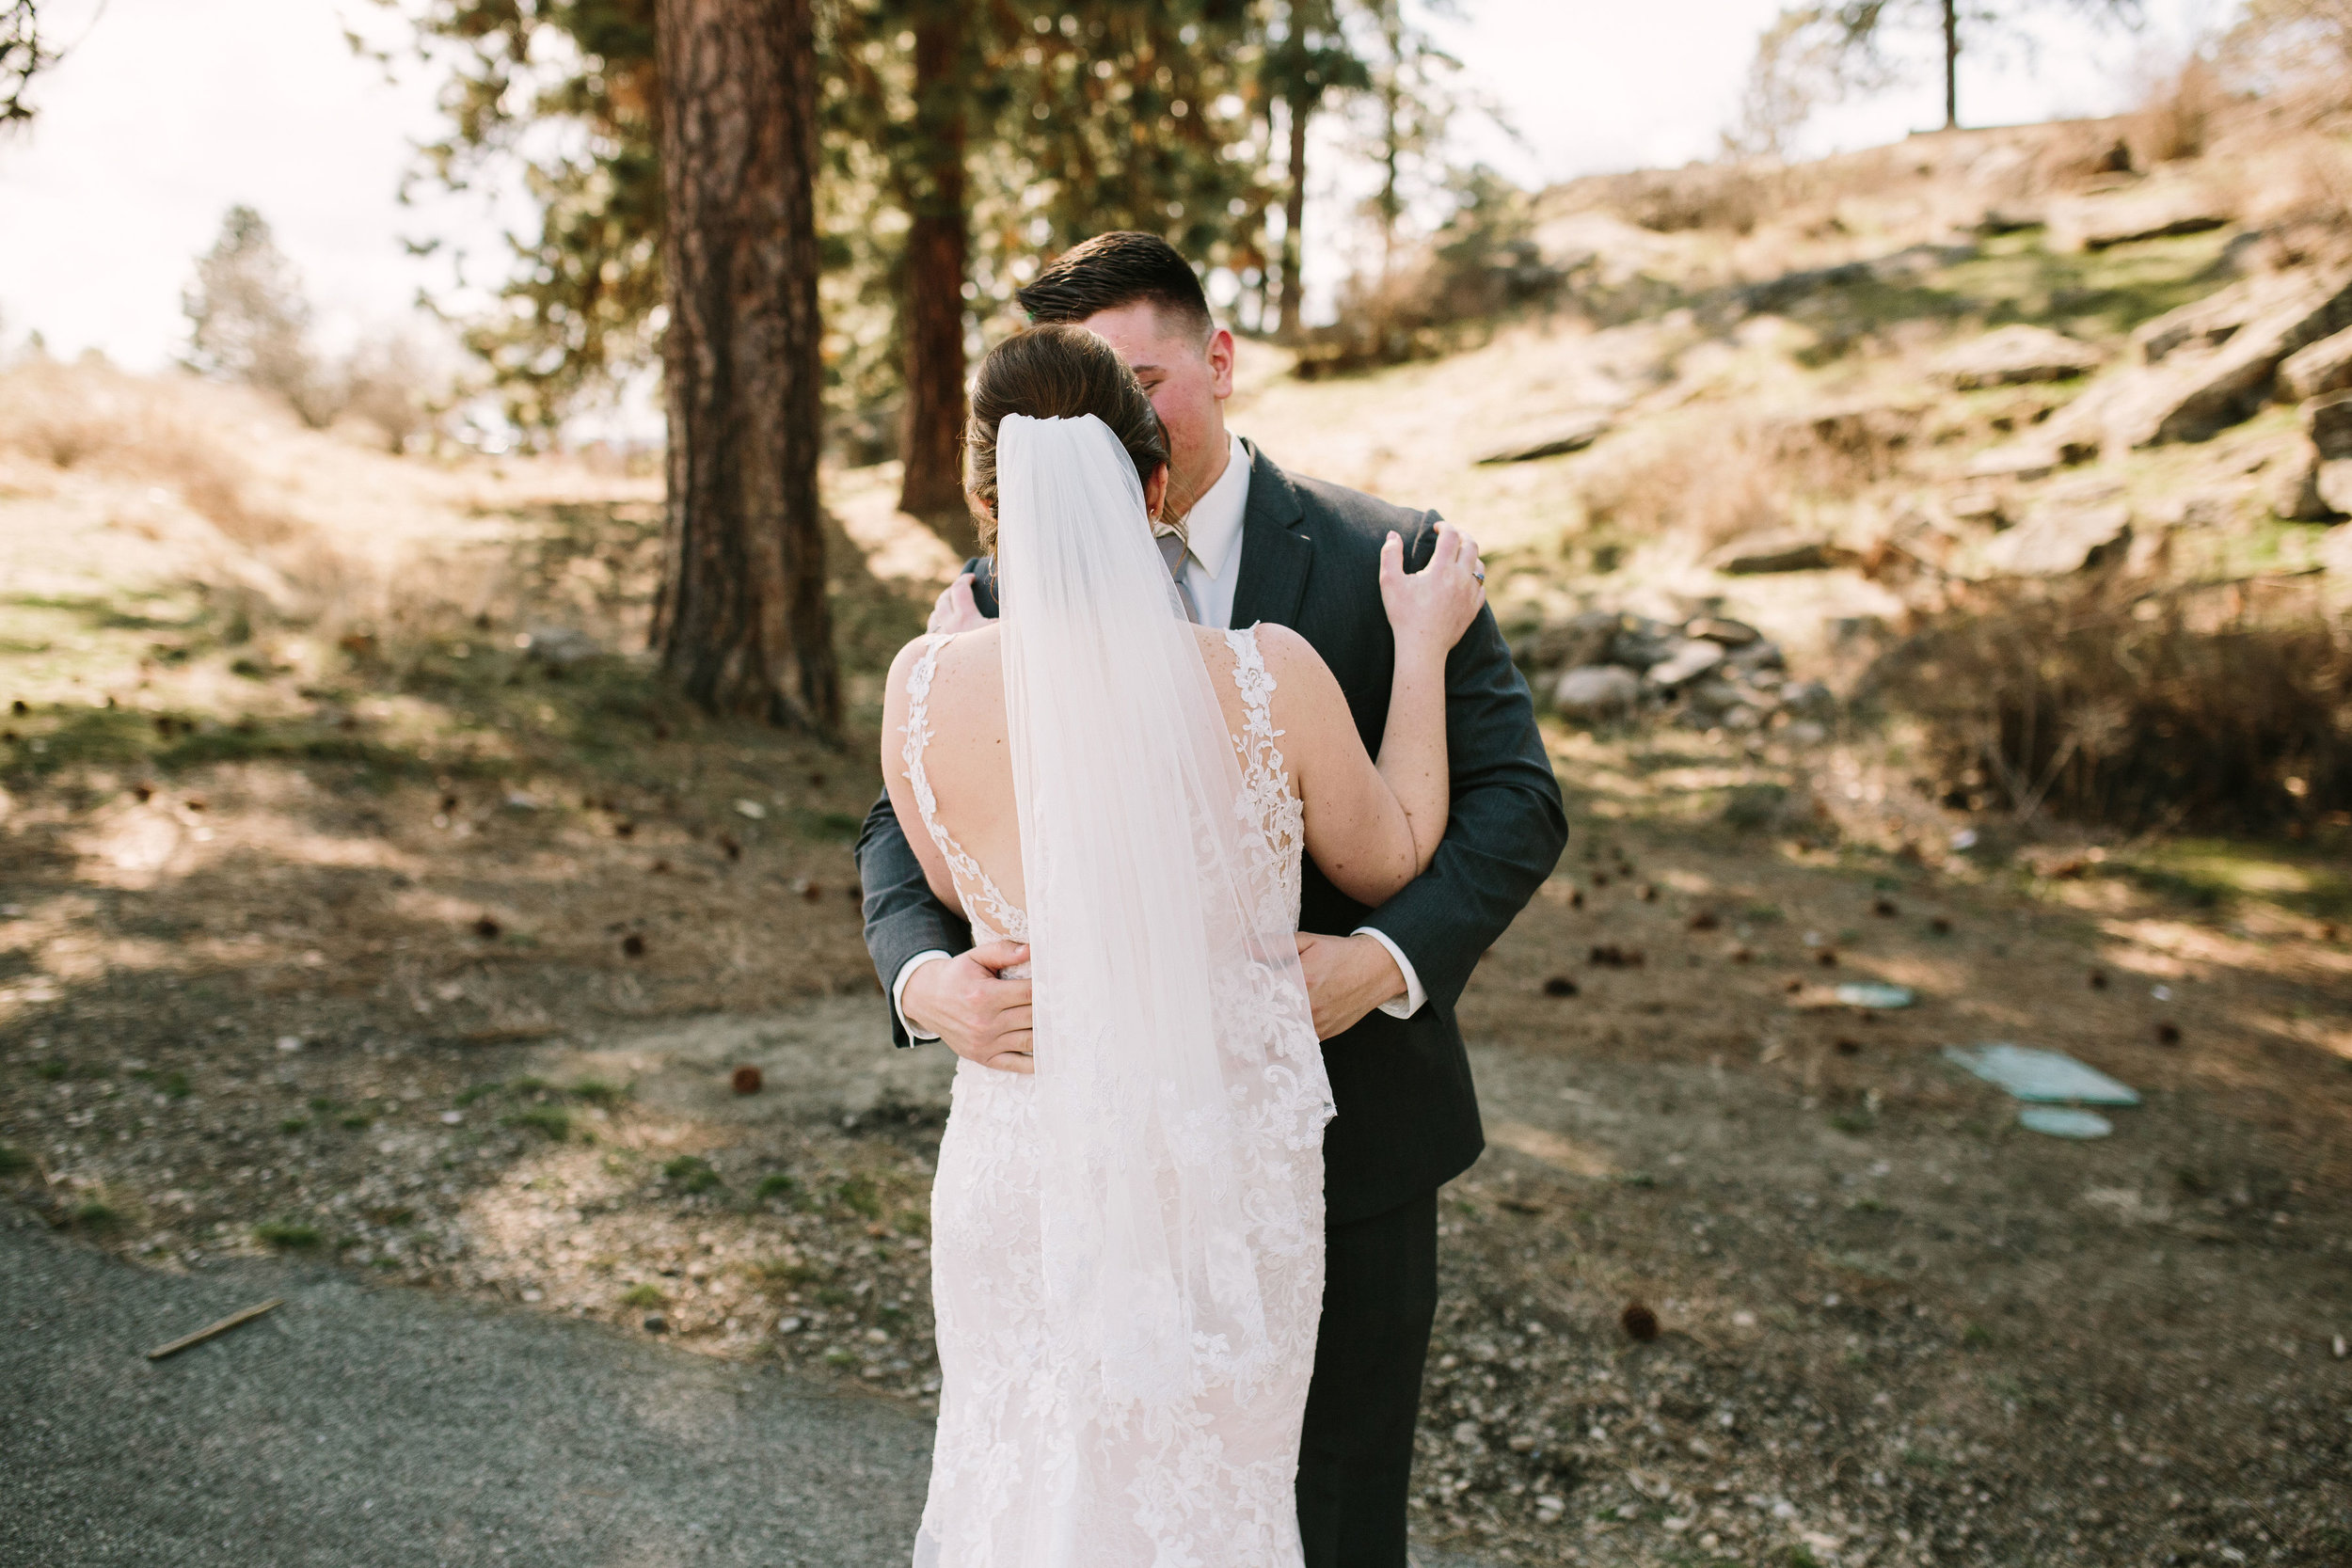 Fun Rustic spokane wedding kissing after first look in love on wedding day